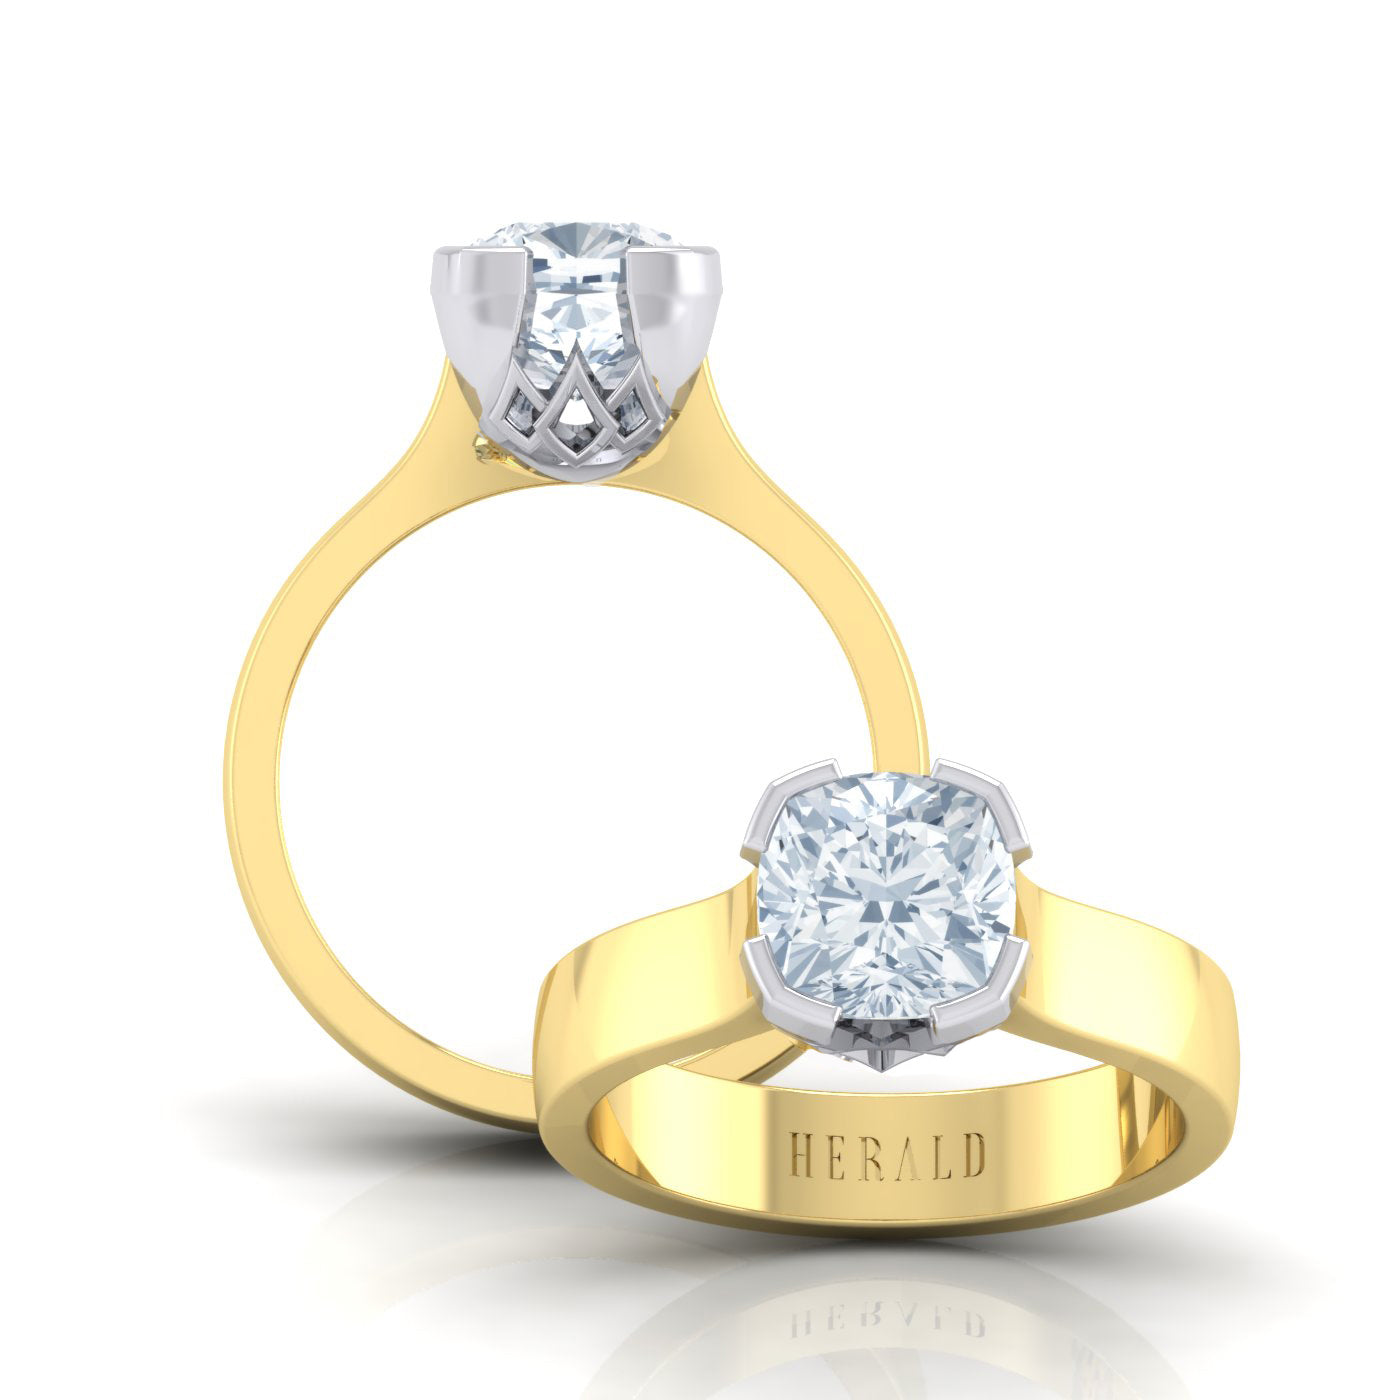 Alice Herald Cushion Solitaire Engagement Ring